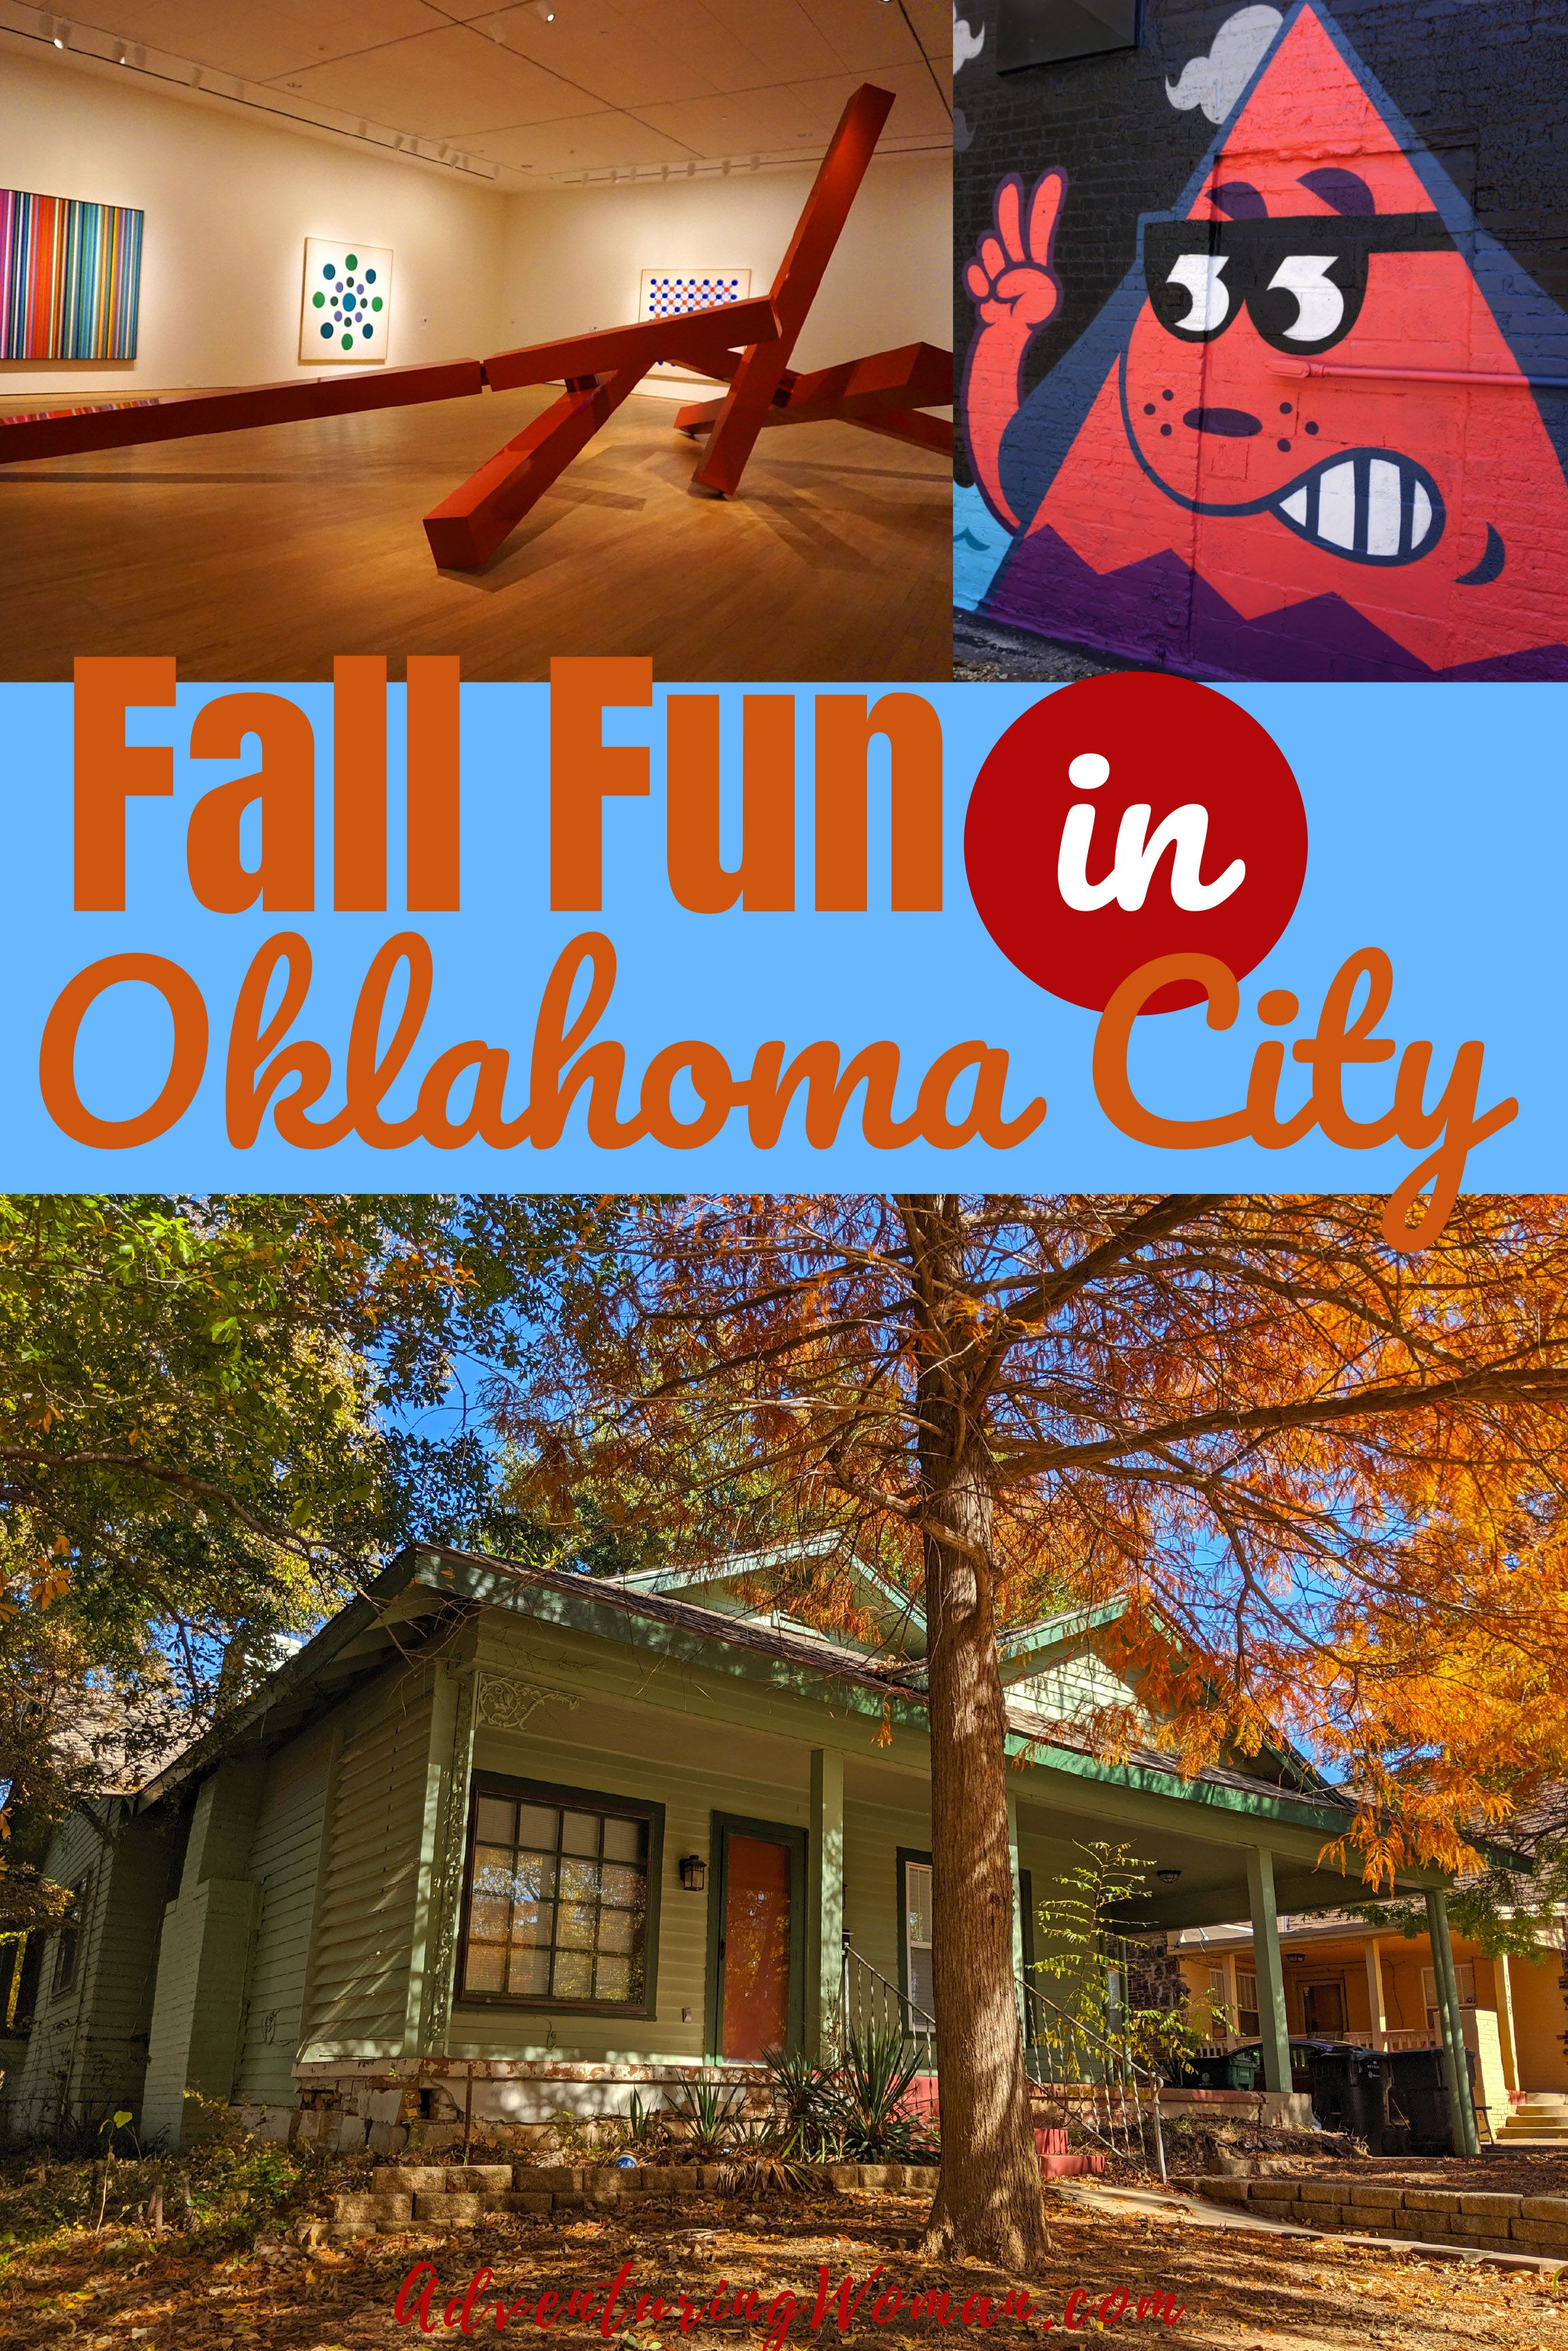 Fall is the perfect time to visit Oklahoma City! I'll share with you some of my favorite Oklahoma City attractions to help you plan your own fall getaway. I visited Oklahoma City last year in early November, and I was there during the peak of fall color. #Fall #Autumn #FallColors #OKC #Oklahoma #OklahomaCity #Travel #CulturalTravel #USA #USATravel #travelblog #AdventuringWoman